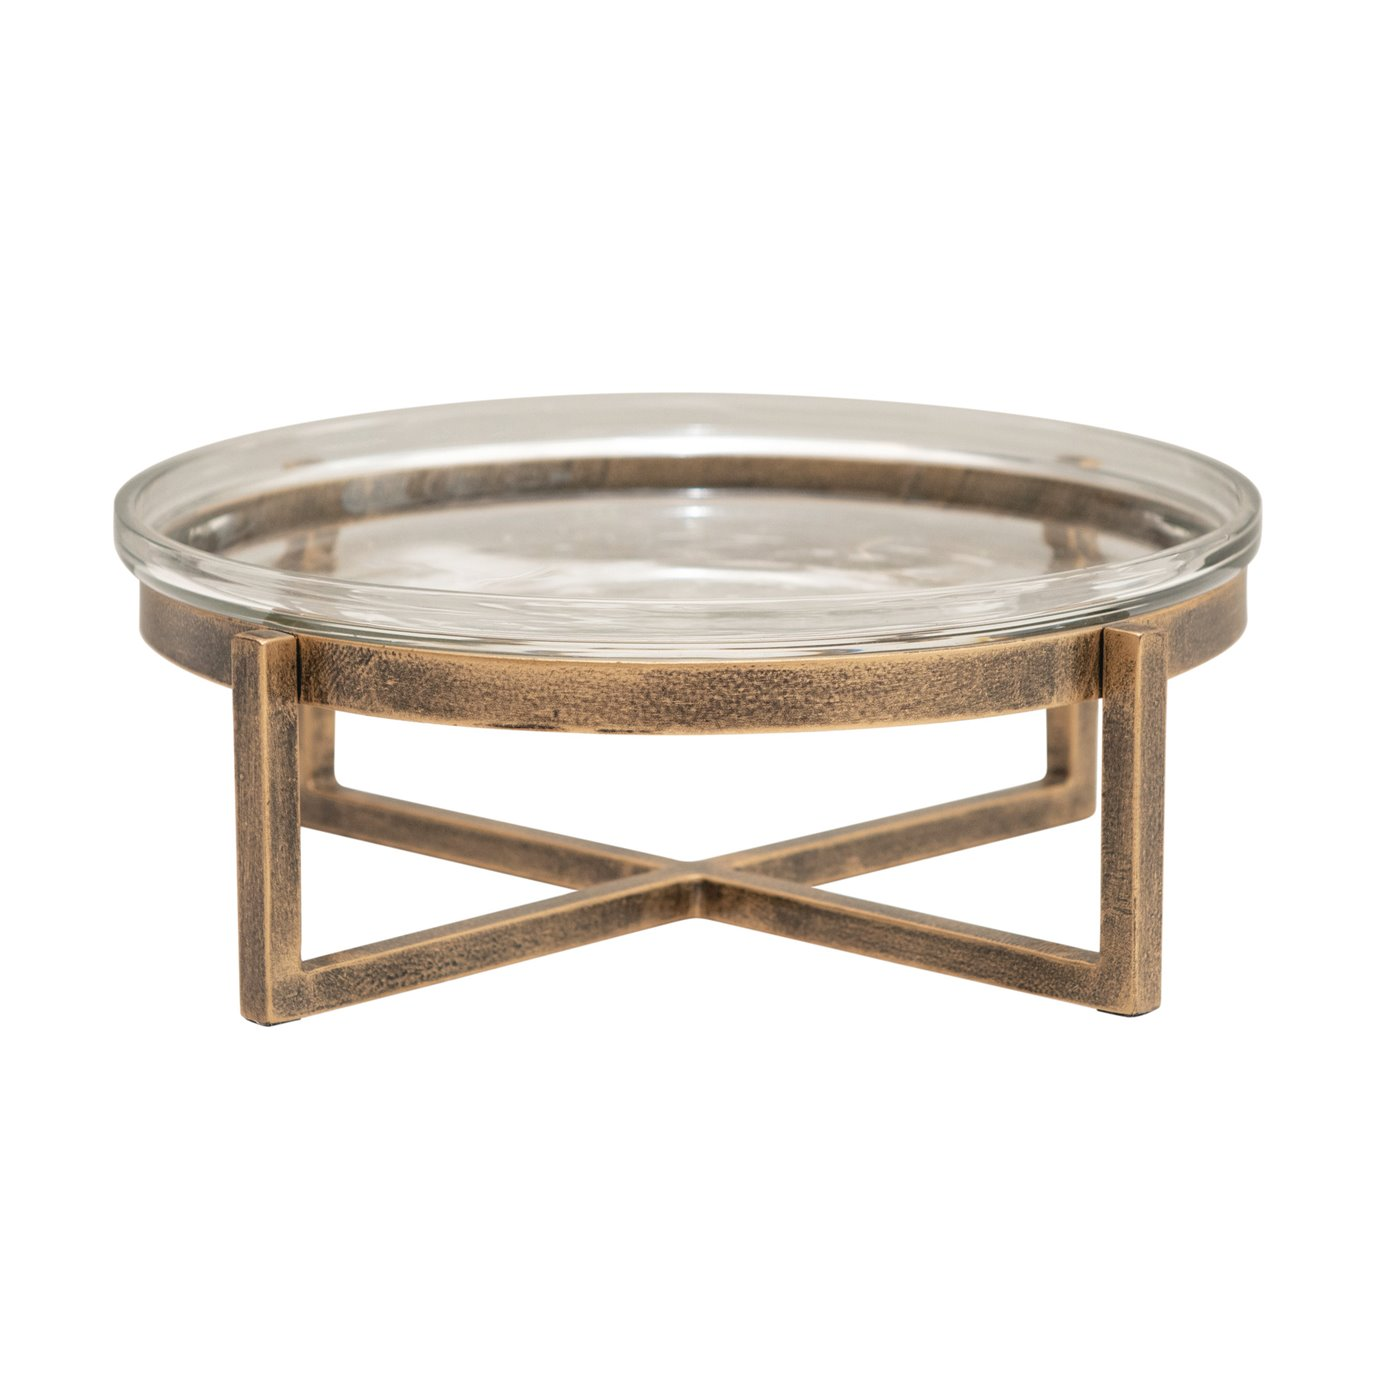 Glass Serving Tray with Metal Stand (Set of 2)